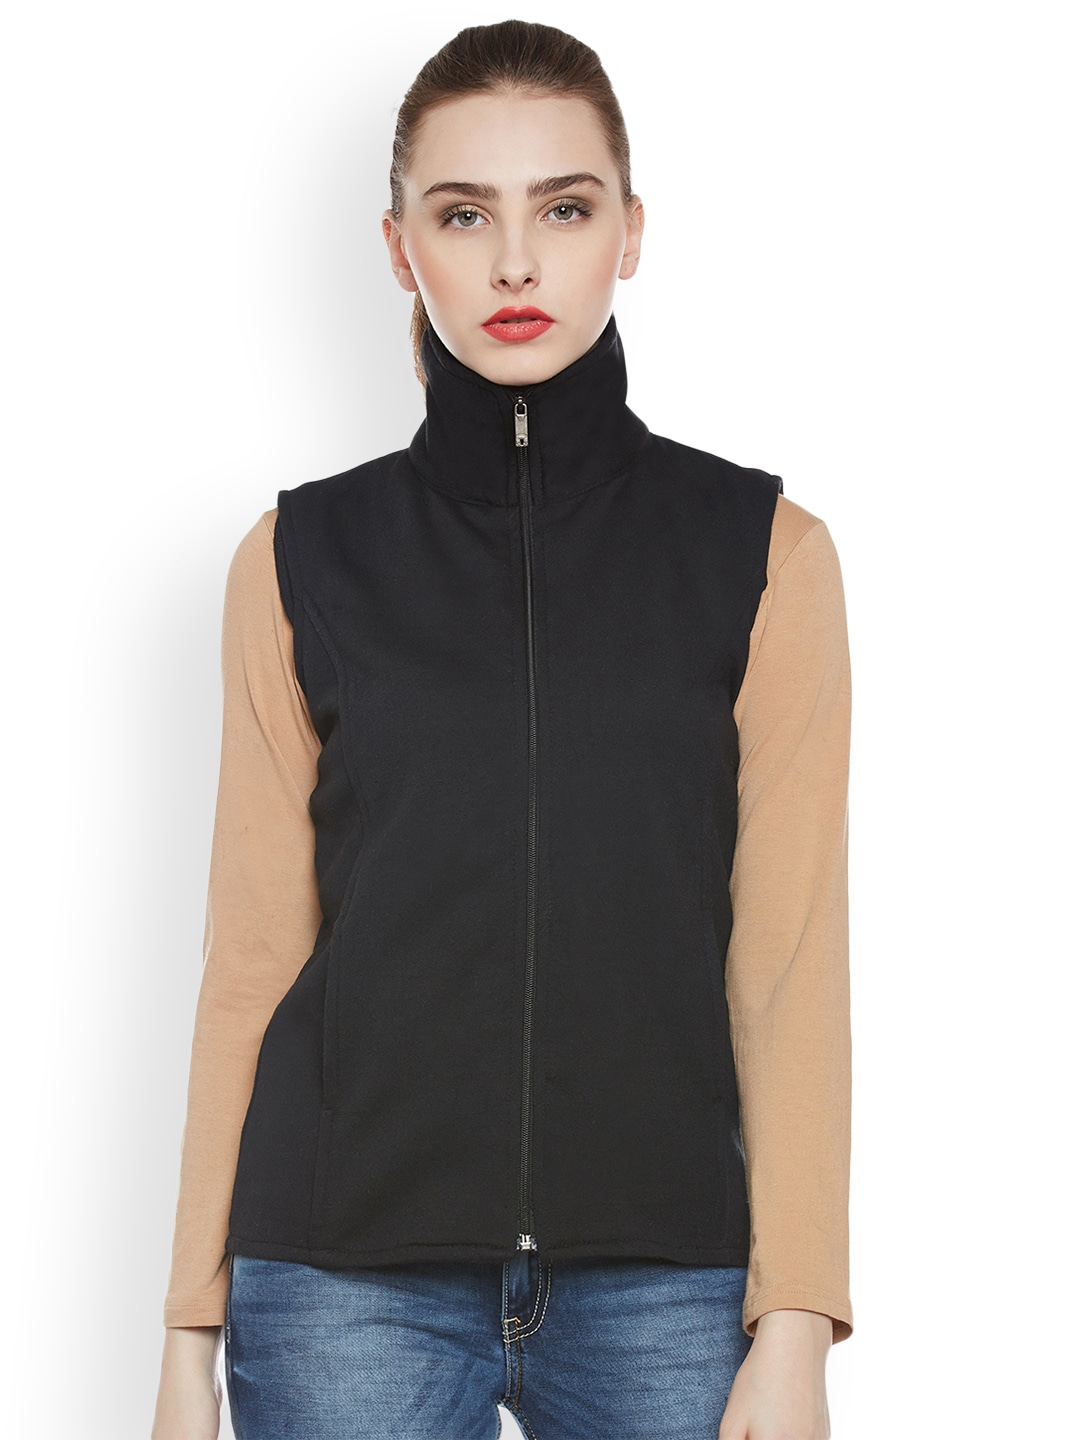 a432d4f1e411ee Black Brand Jackets - Buy Black Brand Jackets online in India